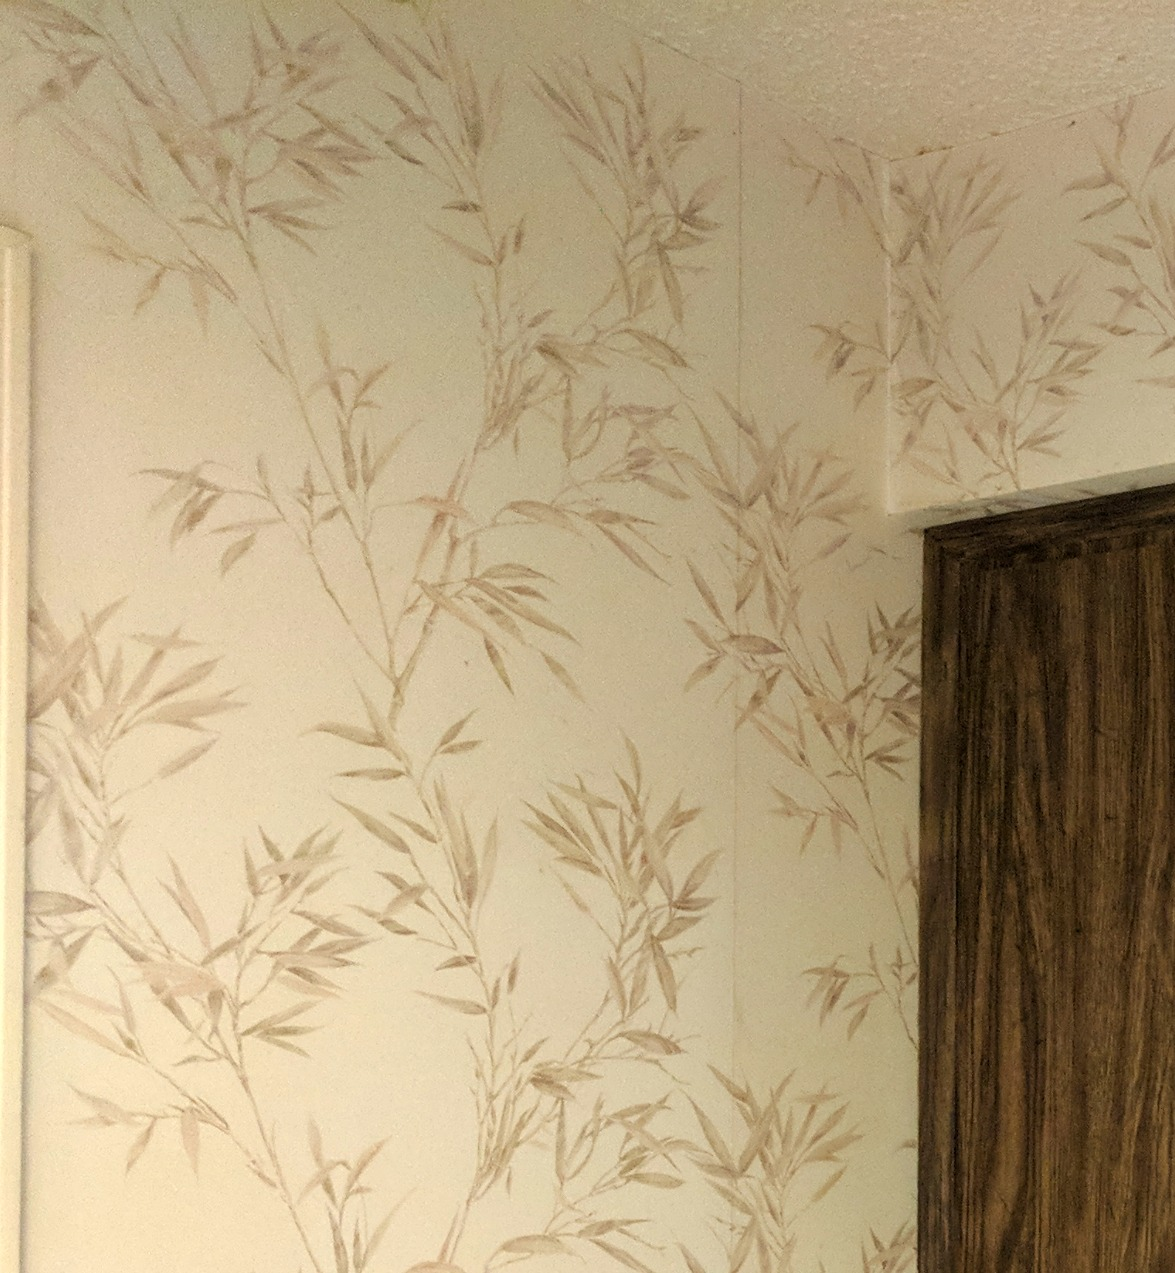 Kitchen, utility room and powder room - covered in this original builder's grade wallpaper applied directly to drywall!